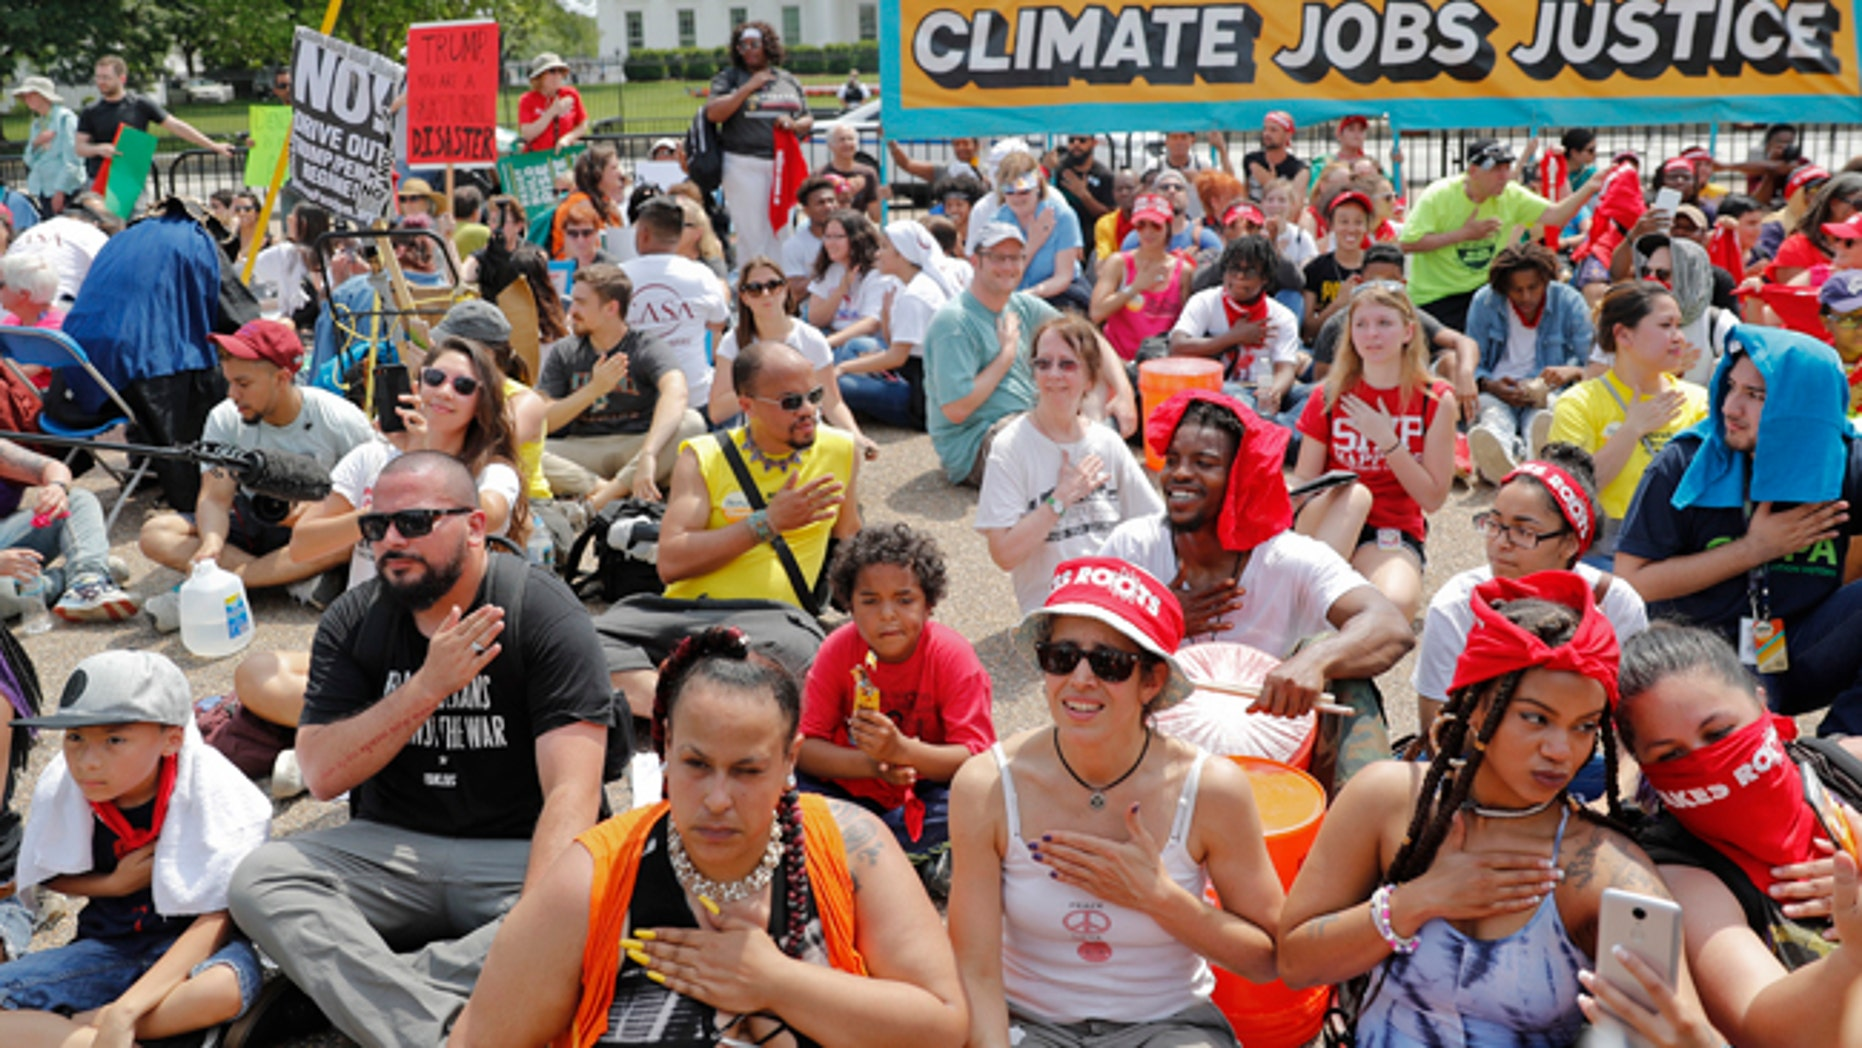 Demonstrators sit on the ground along Pennsylvania Ave. in front of the White House in Washington, Saturday, April 29, 2017, during a demonstration and march. Thousands of people gathered across the country to march in protest of President Donald Trump's environmental policies, which have included rolling back restrictions on mining, oil drilling and greenhouse gas emissions at coal-fired power plants.